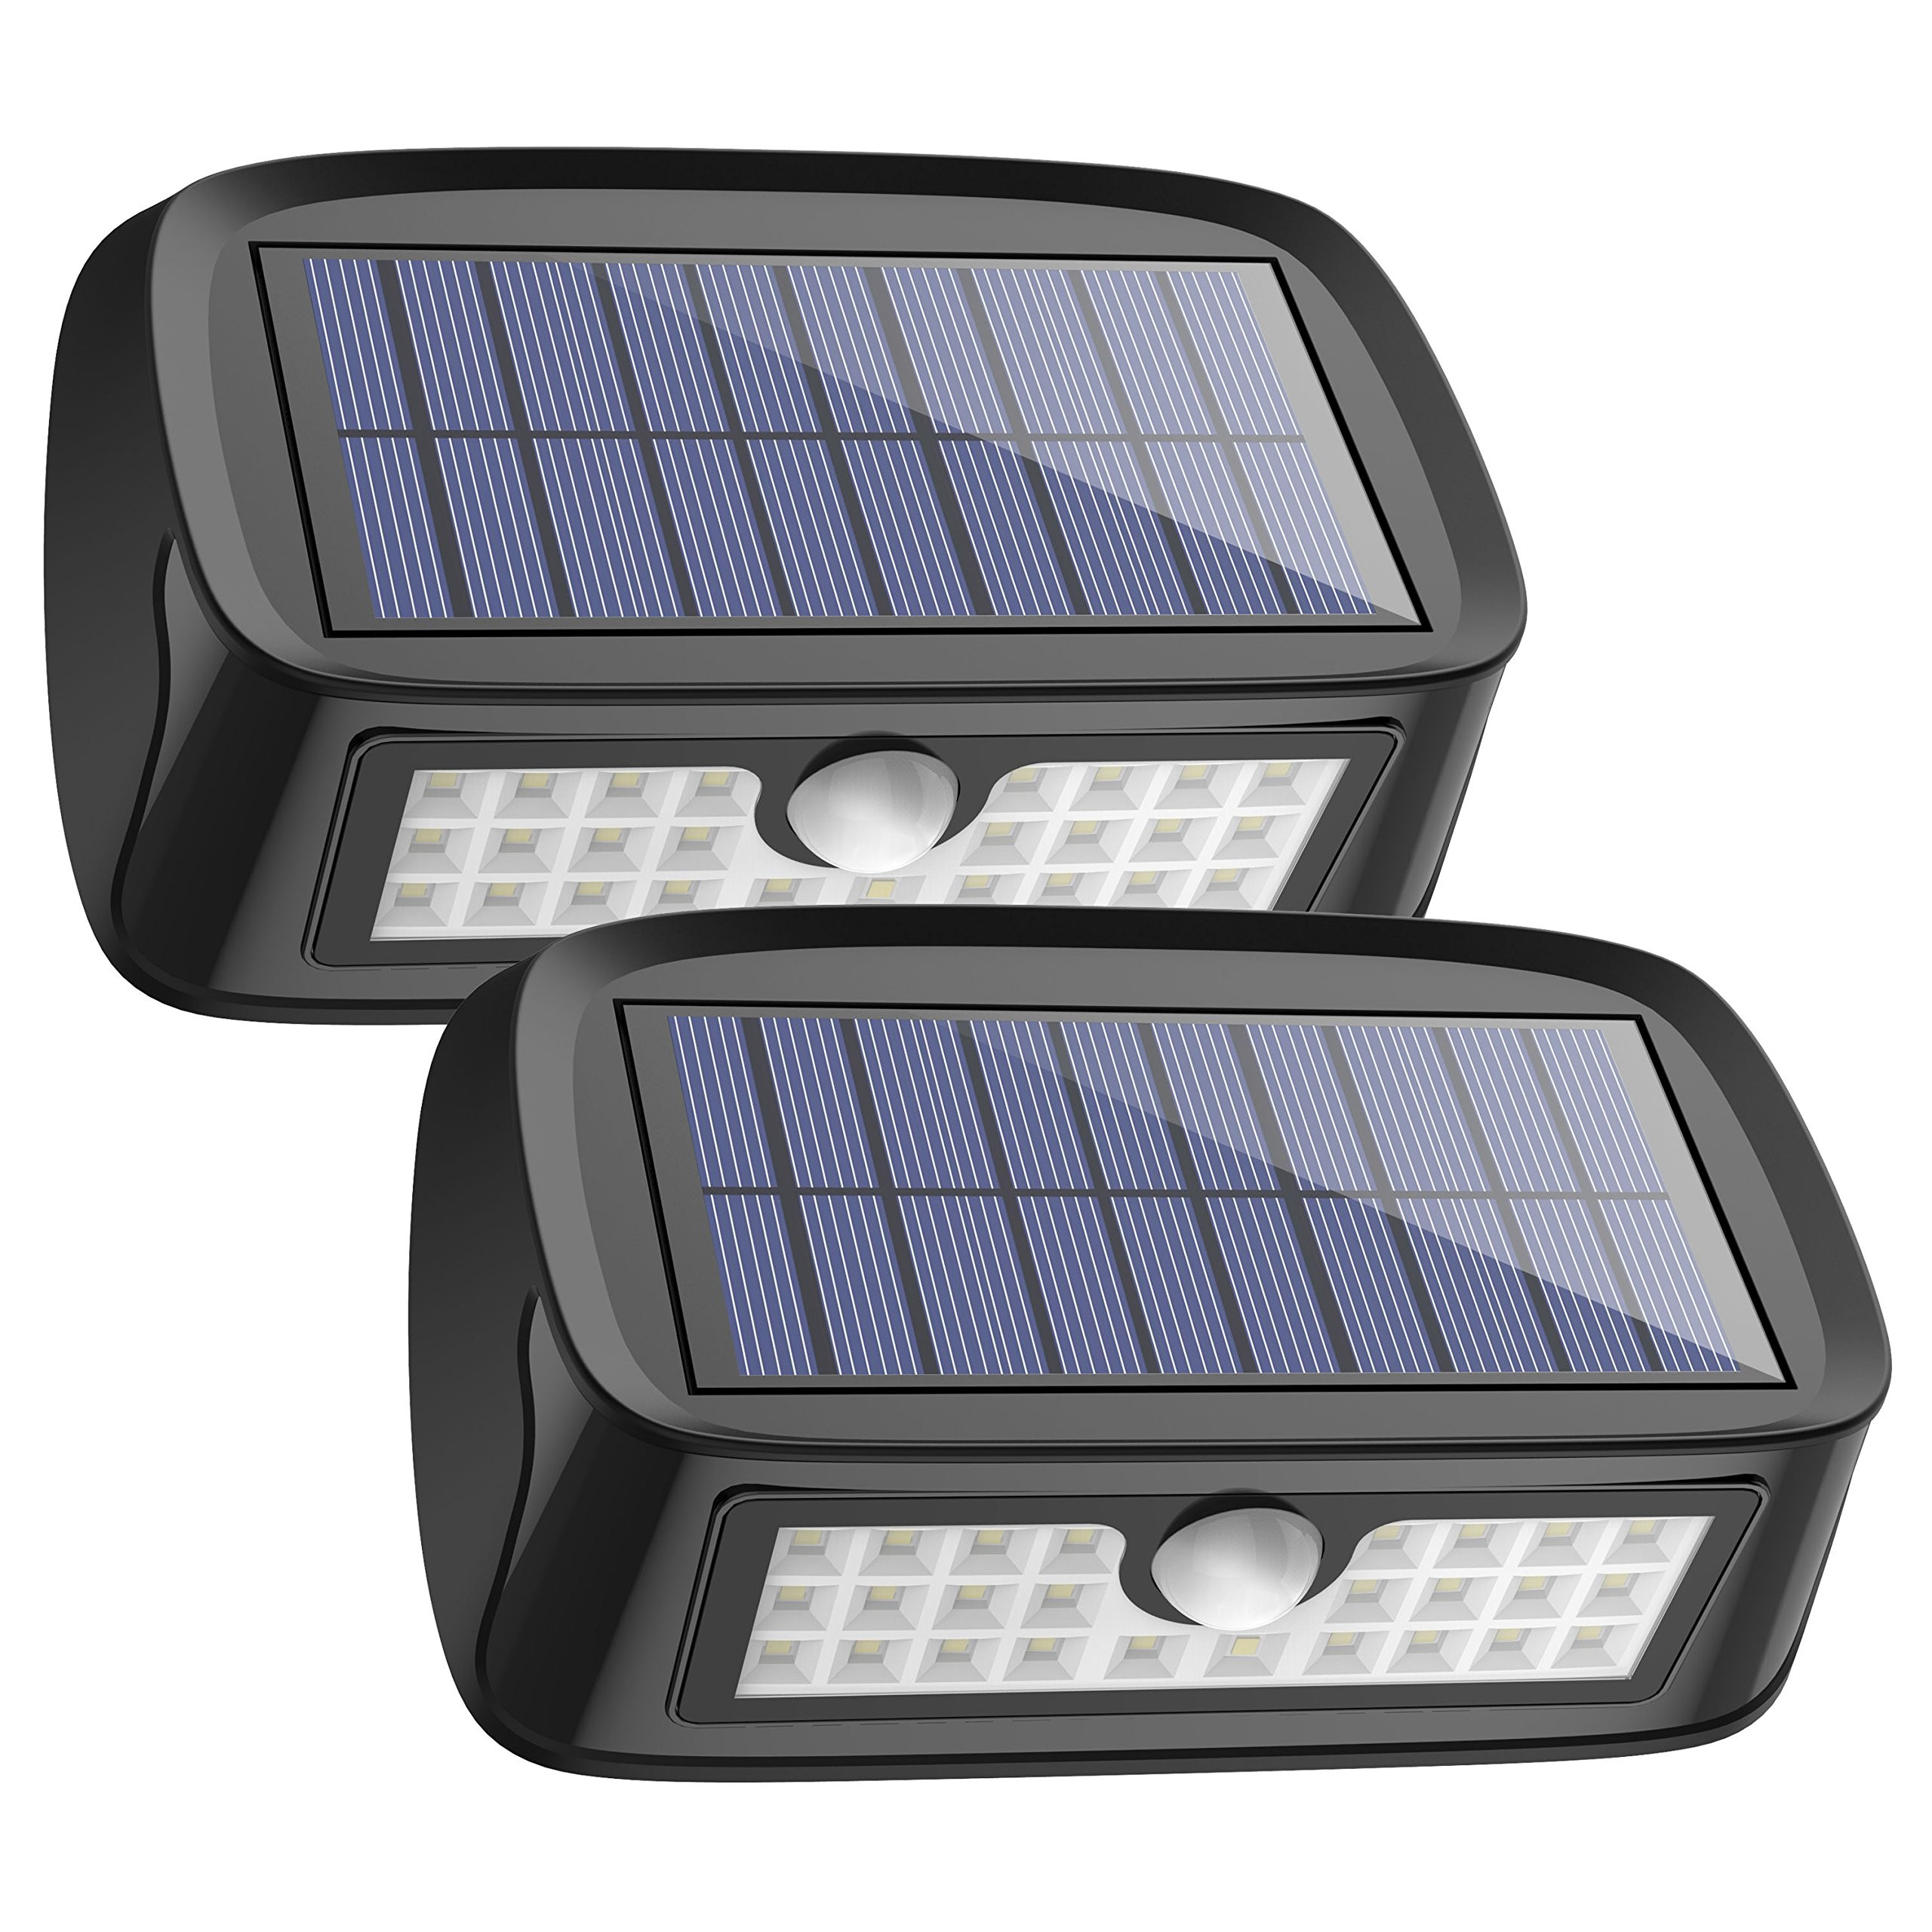 Best solar lights for home amazon solar lights waterproof 26 led wall light outdoor security night lighting with motion sensor detector for patio deck yard garden lawn back door step stair aloadofball Images